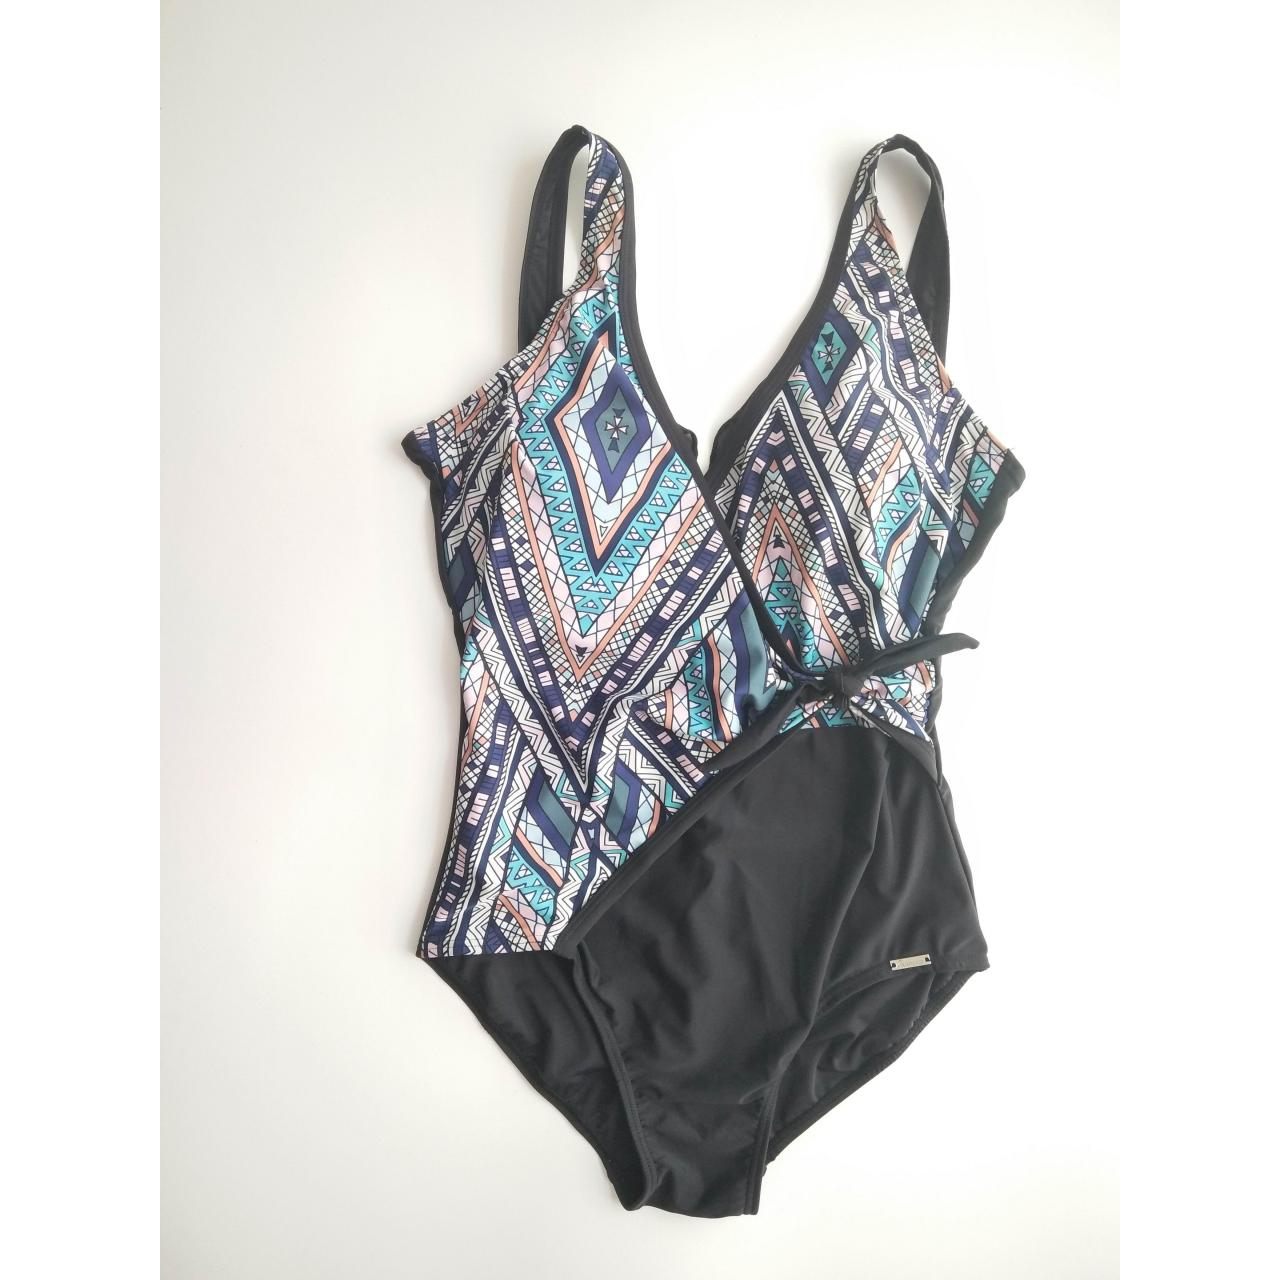 Quality LADIES SWIMSUITS ladies front tie one-piece swimwear for sale